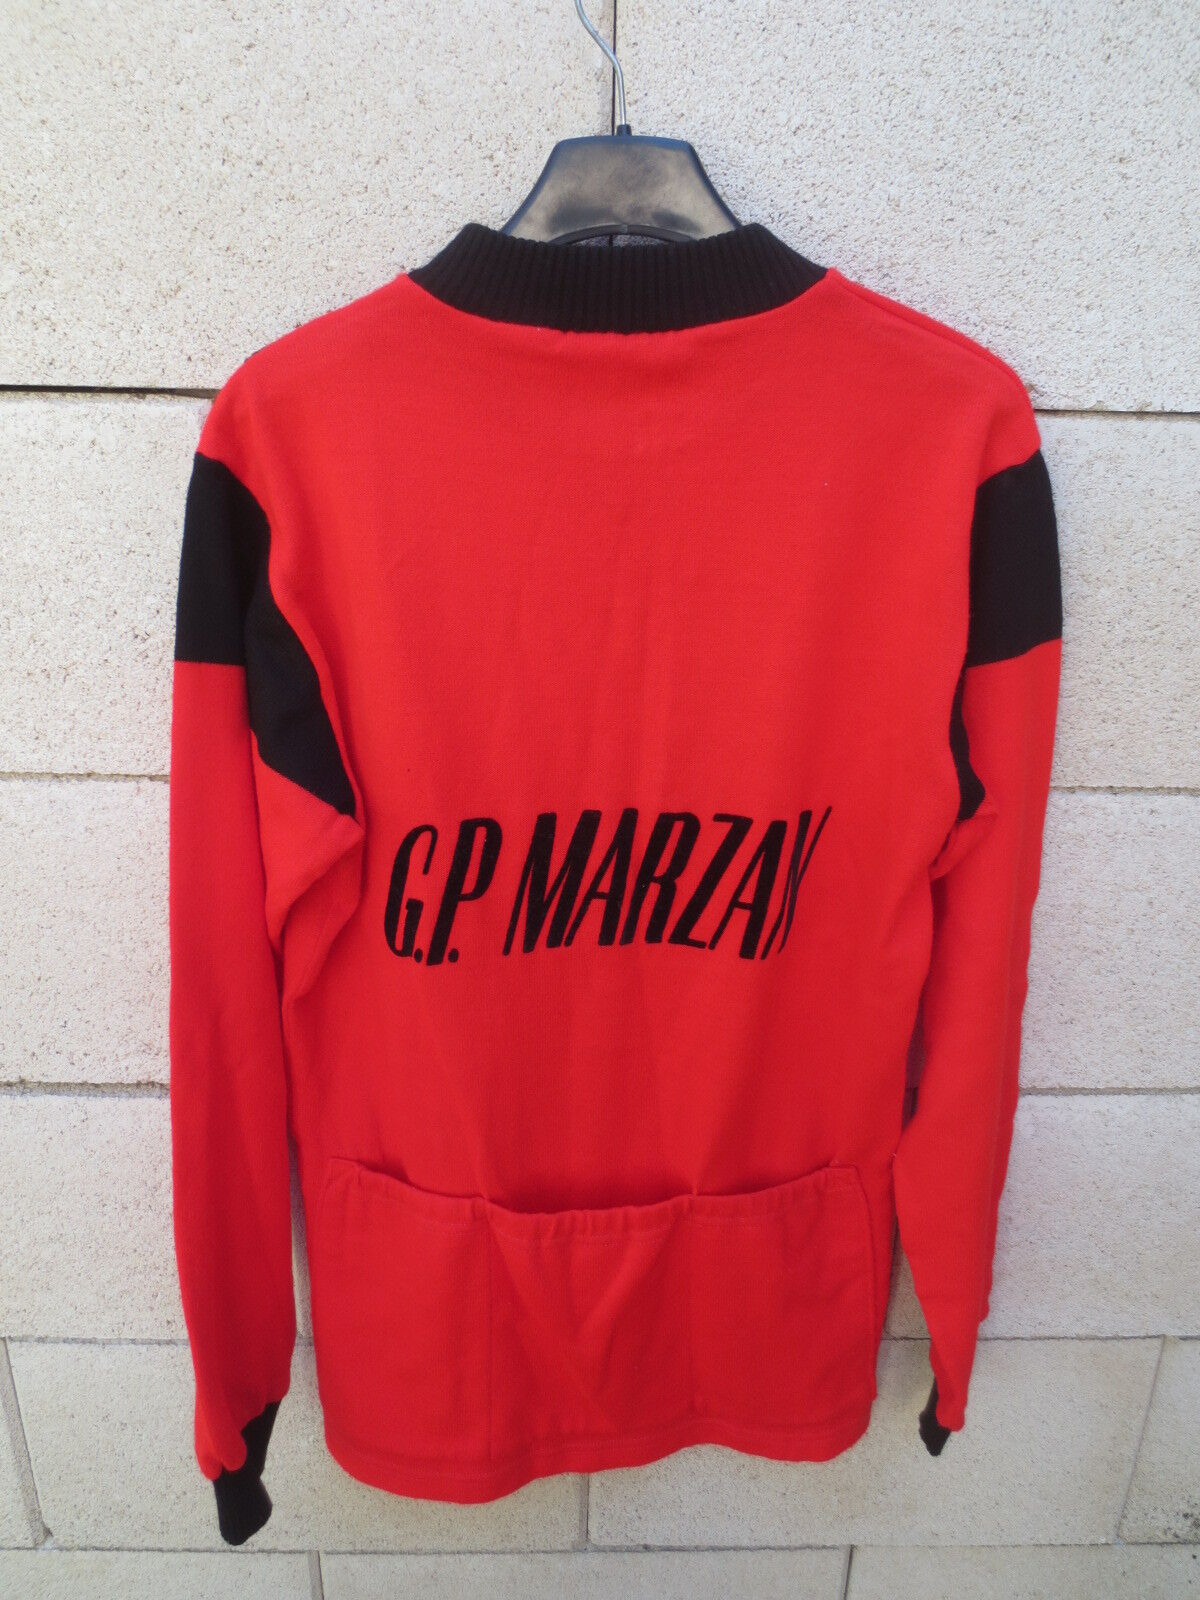 VINTAGE Maillot cycliste G.P MARZAN cycling jersey camiseta manches longues M